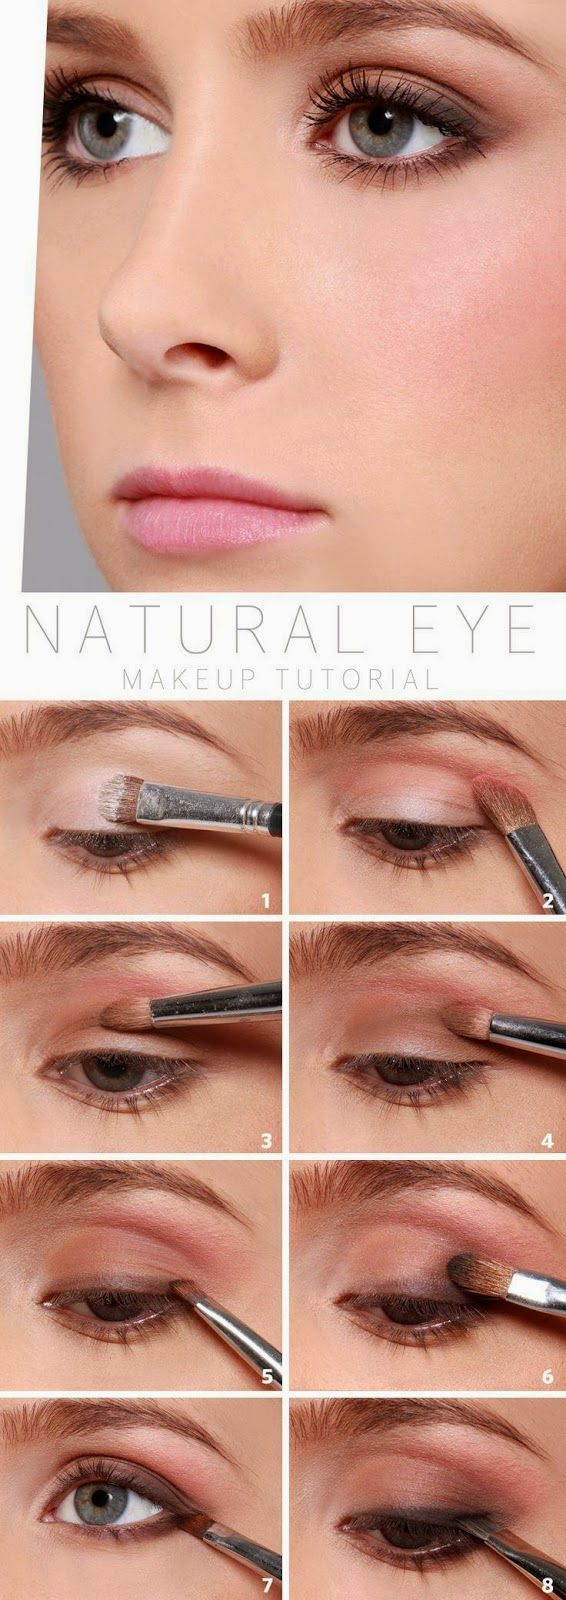 Natural Eye Makeup Tutorial - Anna Things and Thoughts